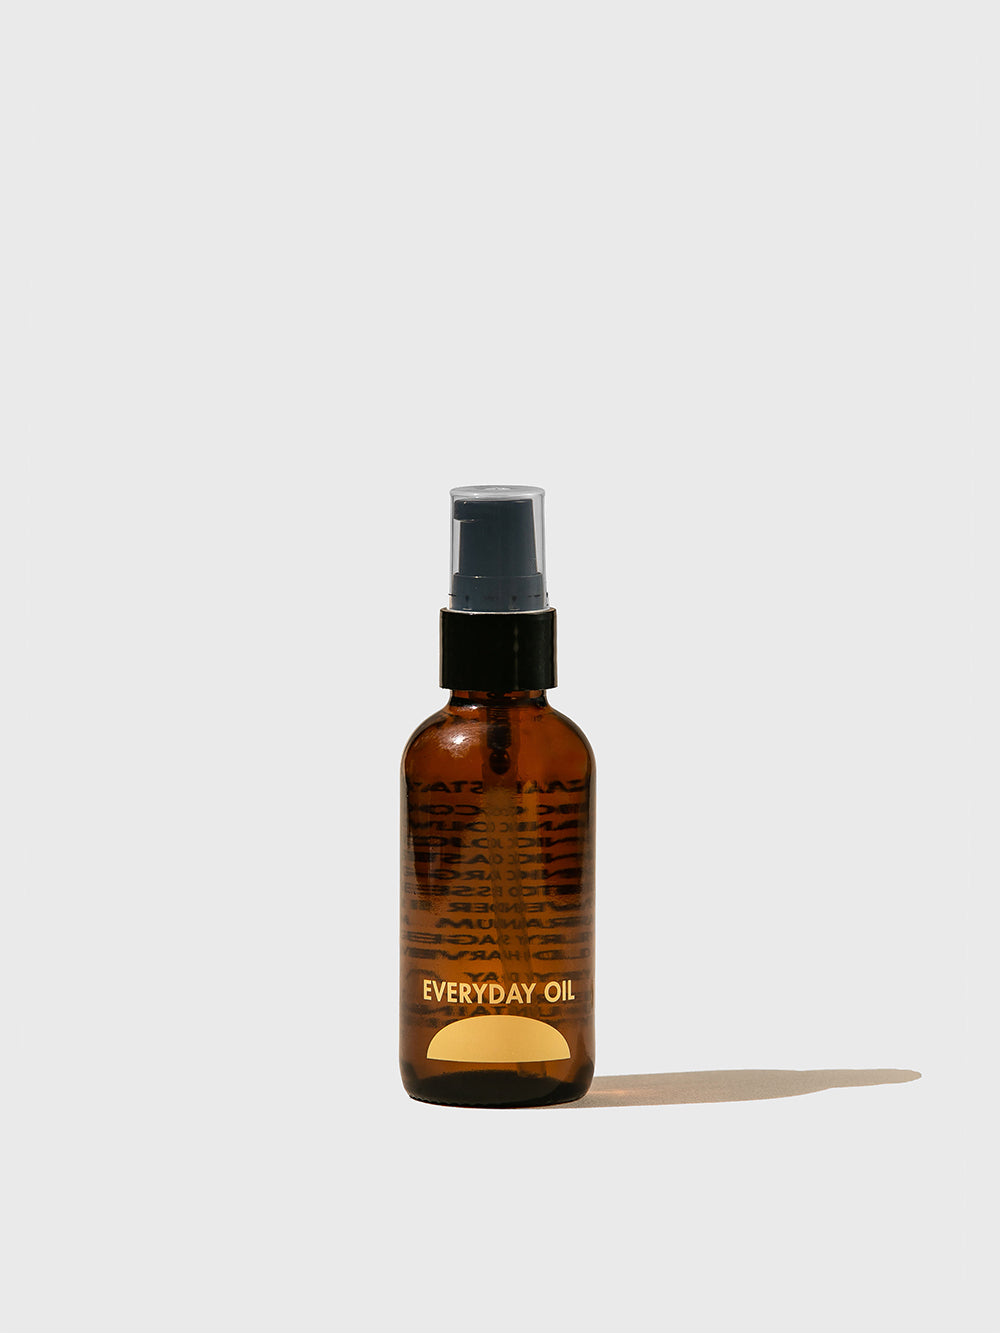 everyday oil mainstay blend - 2 oz